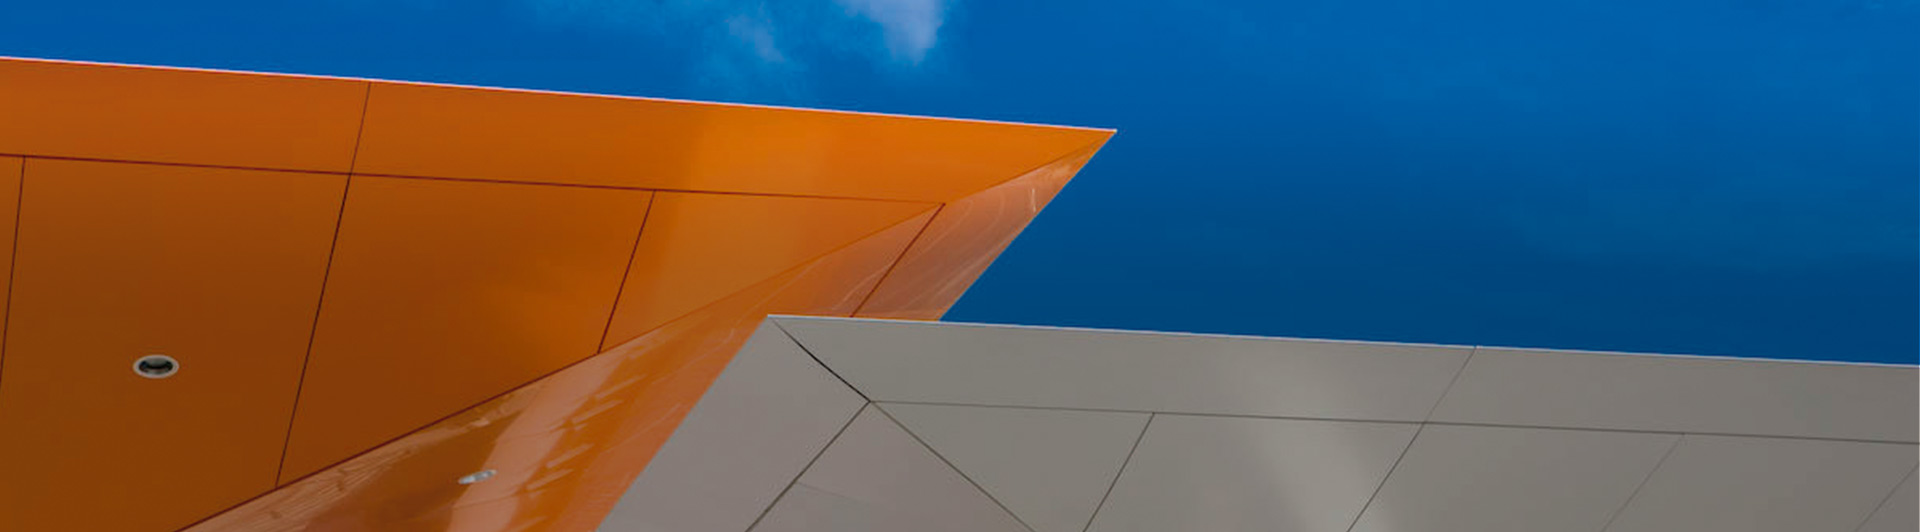 Close-up of an orange and a gray inside out umbrella shaped canopy at a Repsol service station